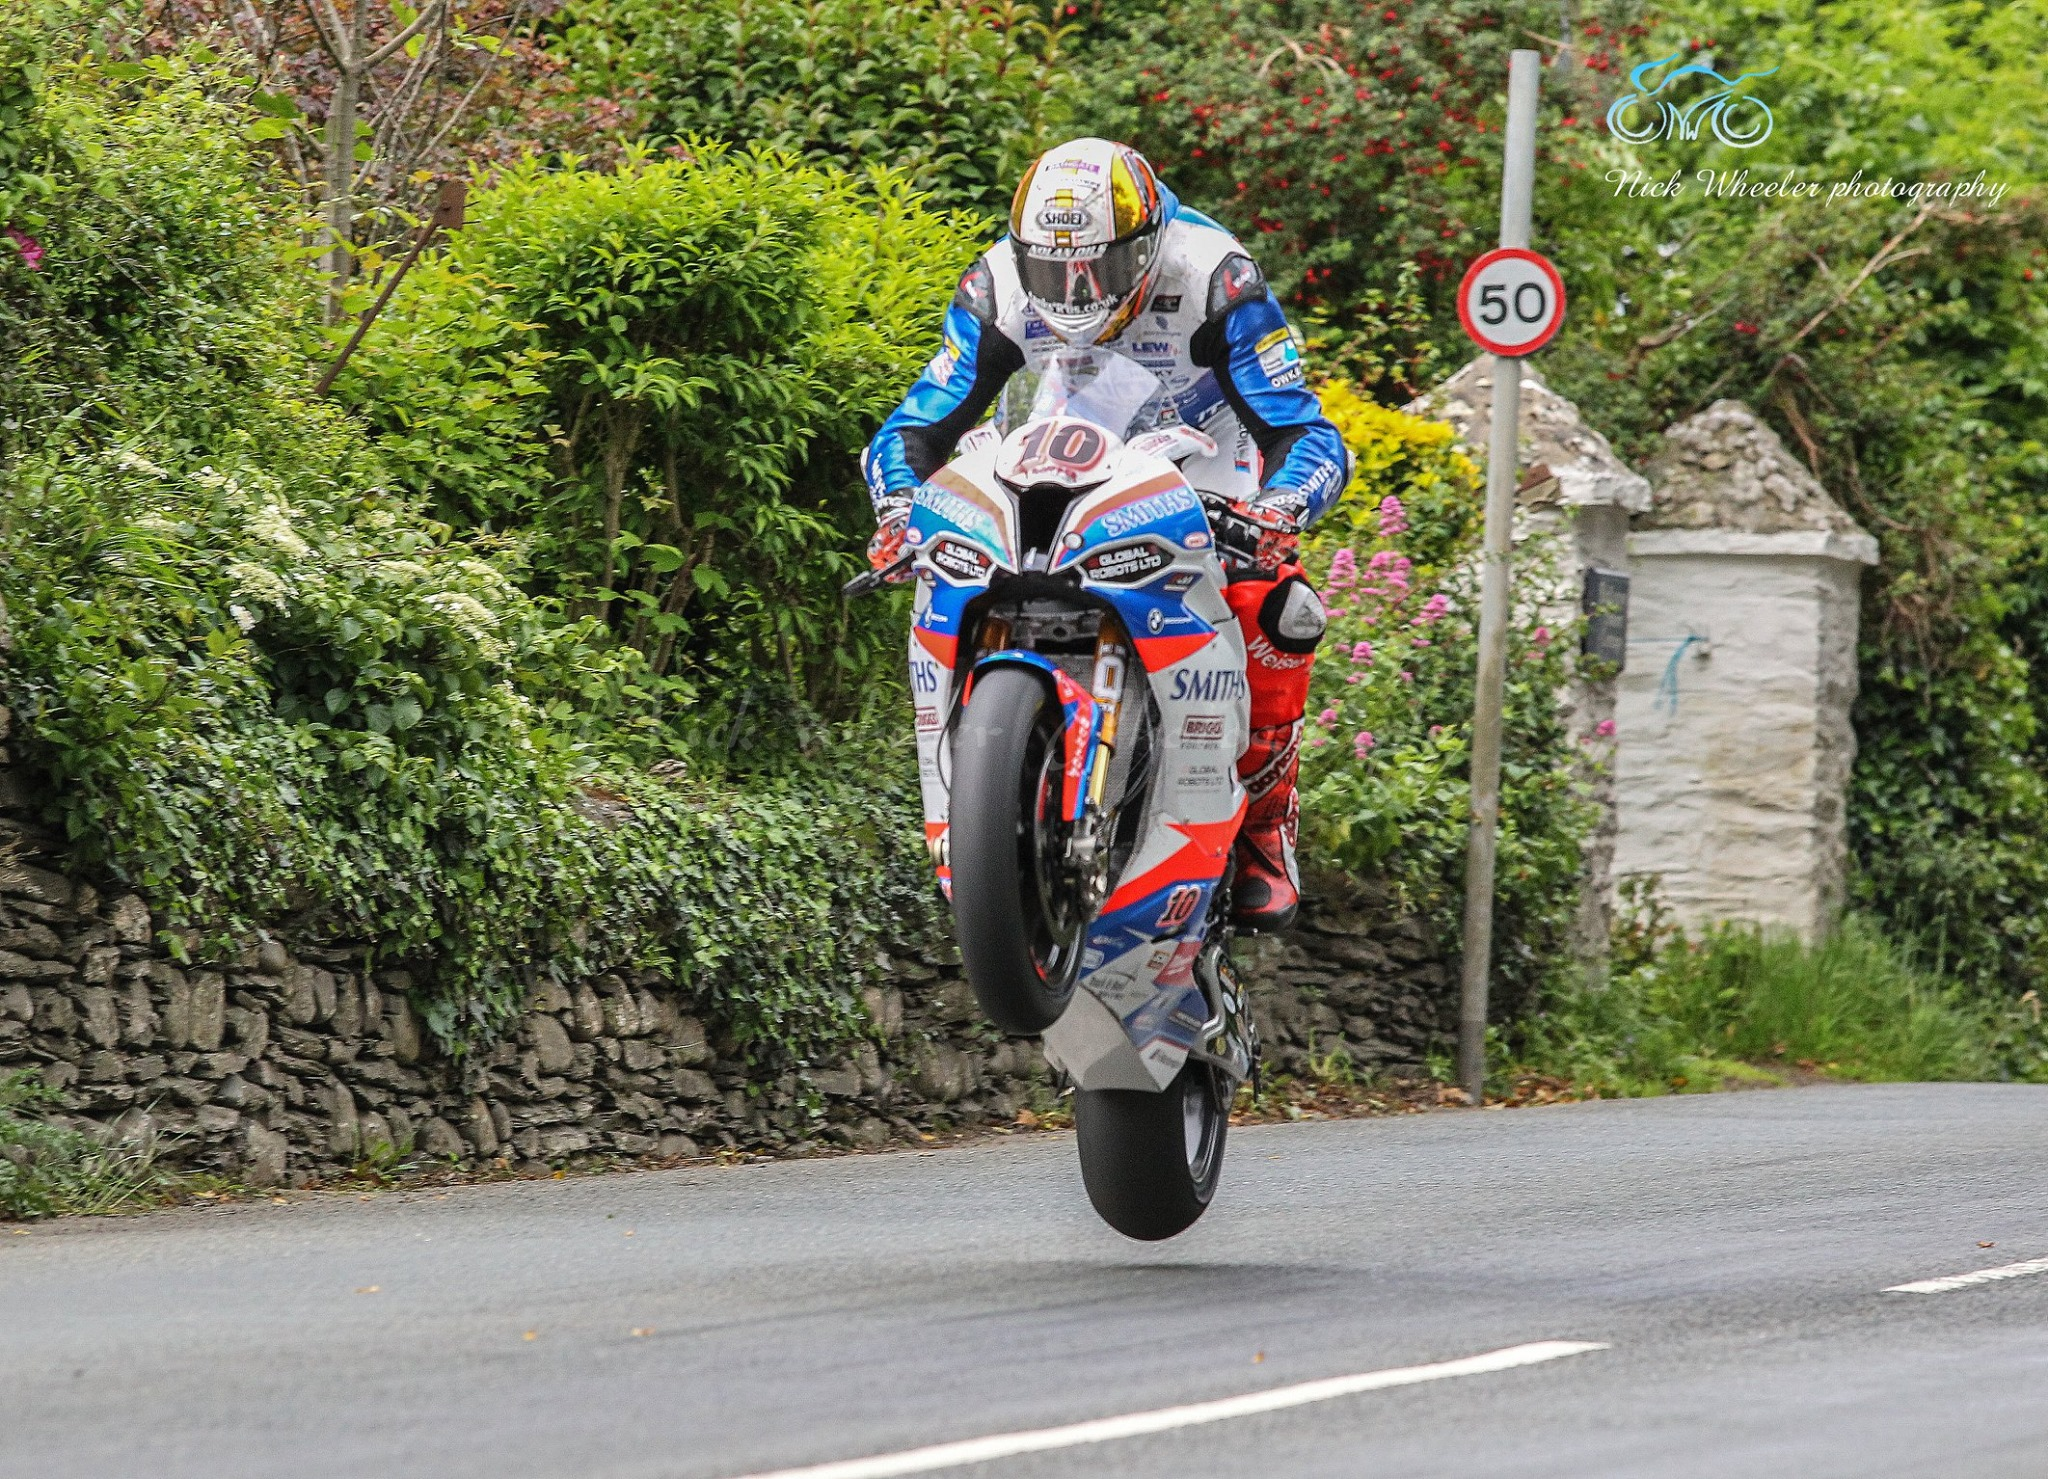 TT 2020: TT Themed Documentaries, Races Of The Decade To Feature Soon On ITV4